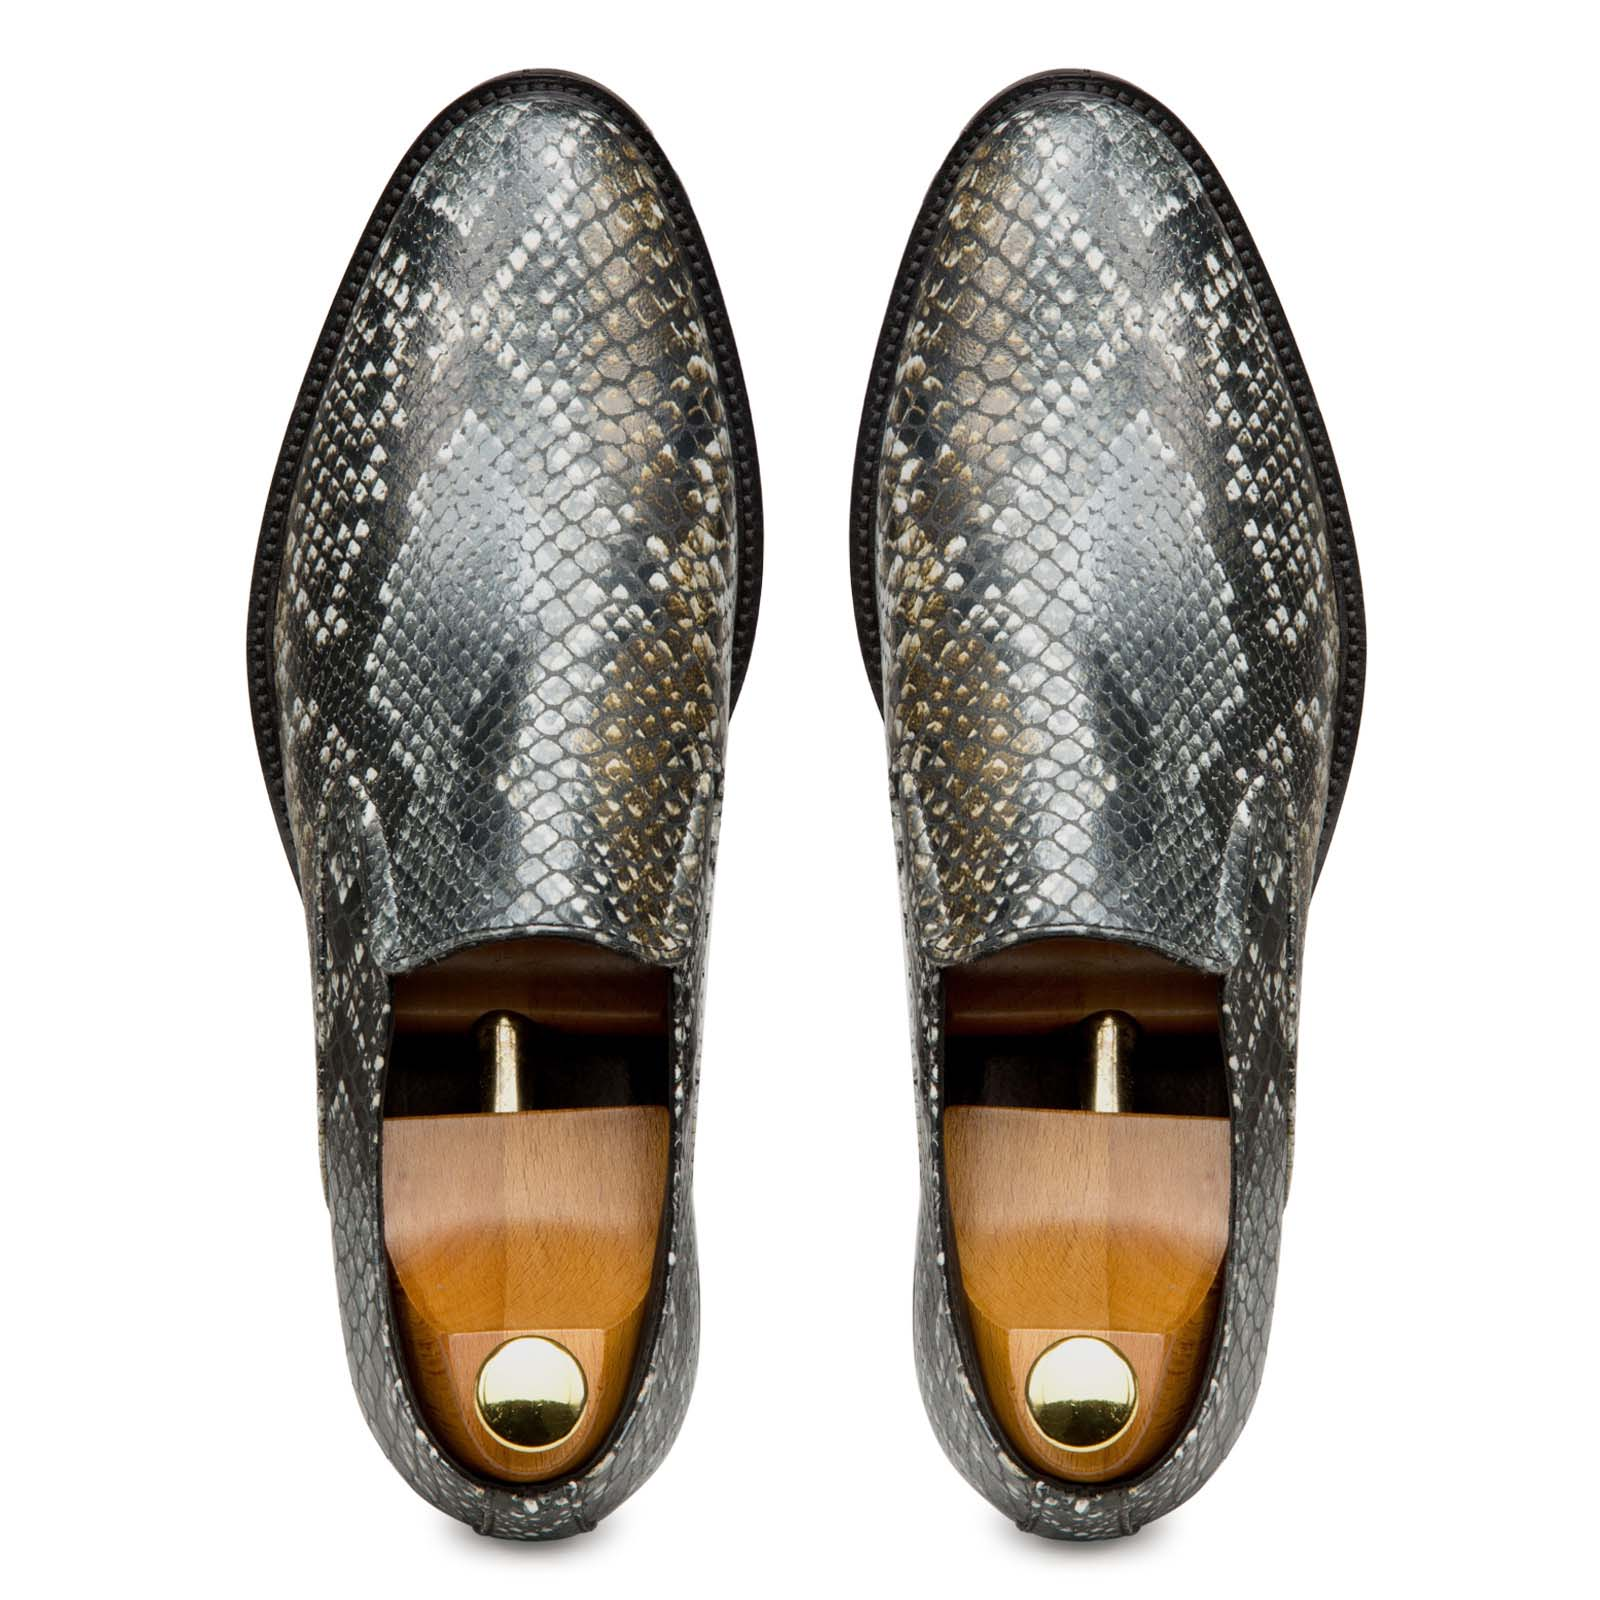 Rare Snake Foil-Printed Leather Slipons